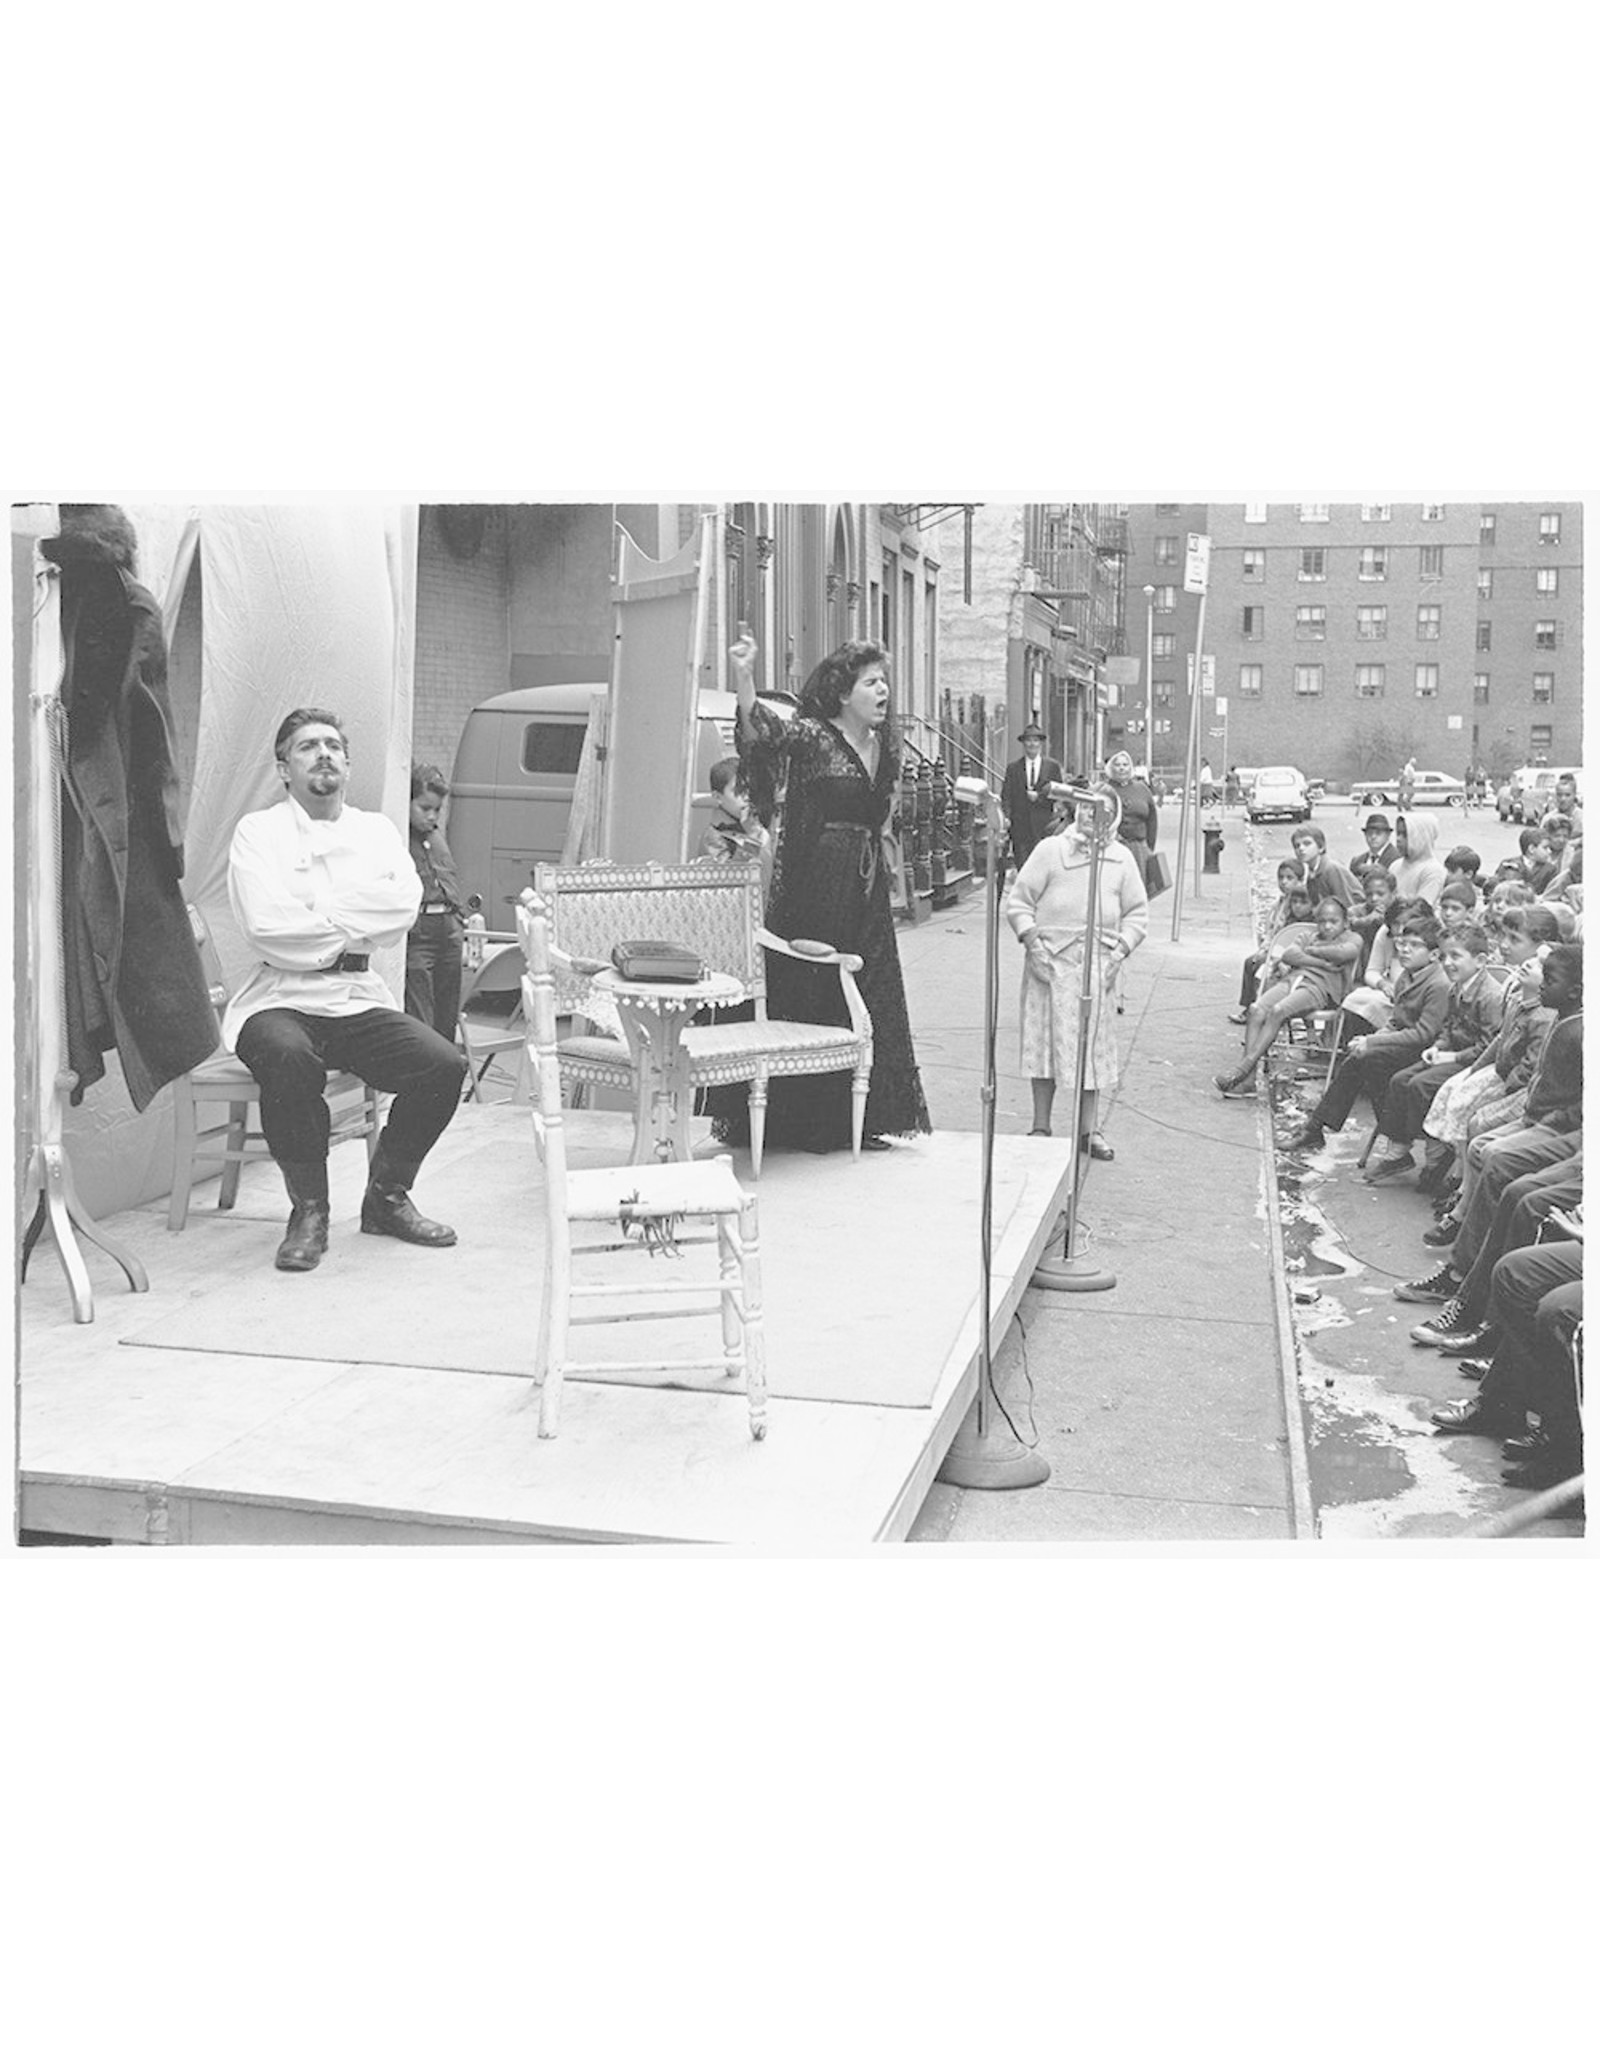 Jonathan Brand: Lower East and Upper West - New York City Photographs 1957-1968